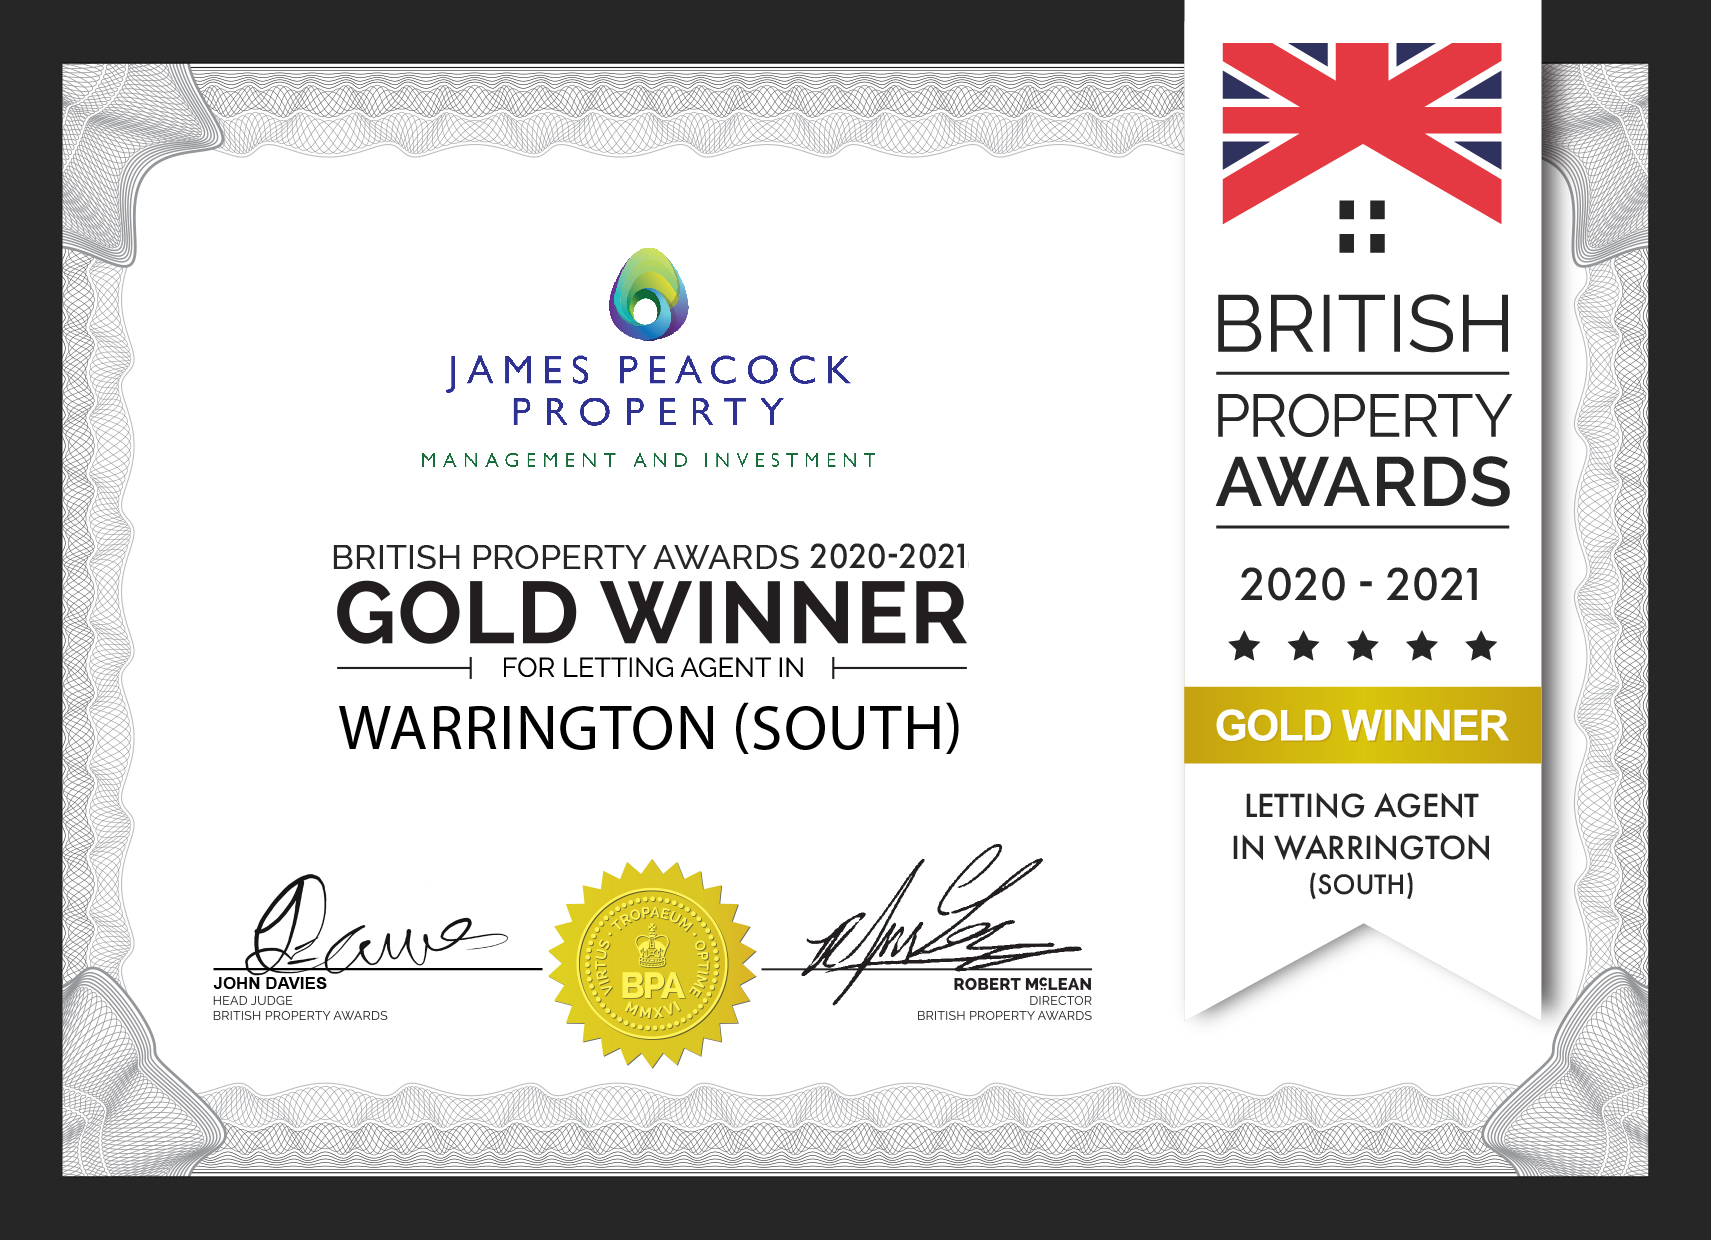 James Peacock Property Win Outstanding Agent Award for the second year running